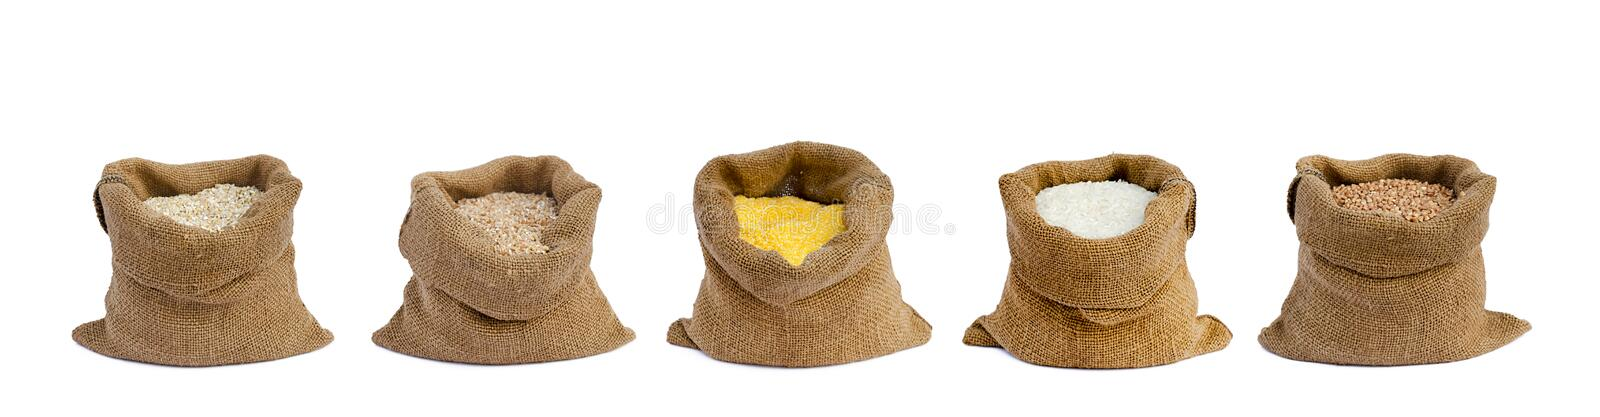 Grain in sacks stock image